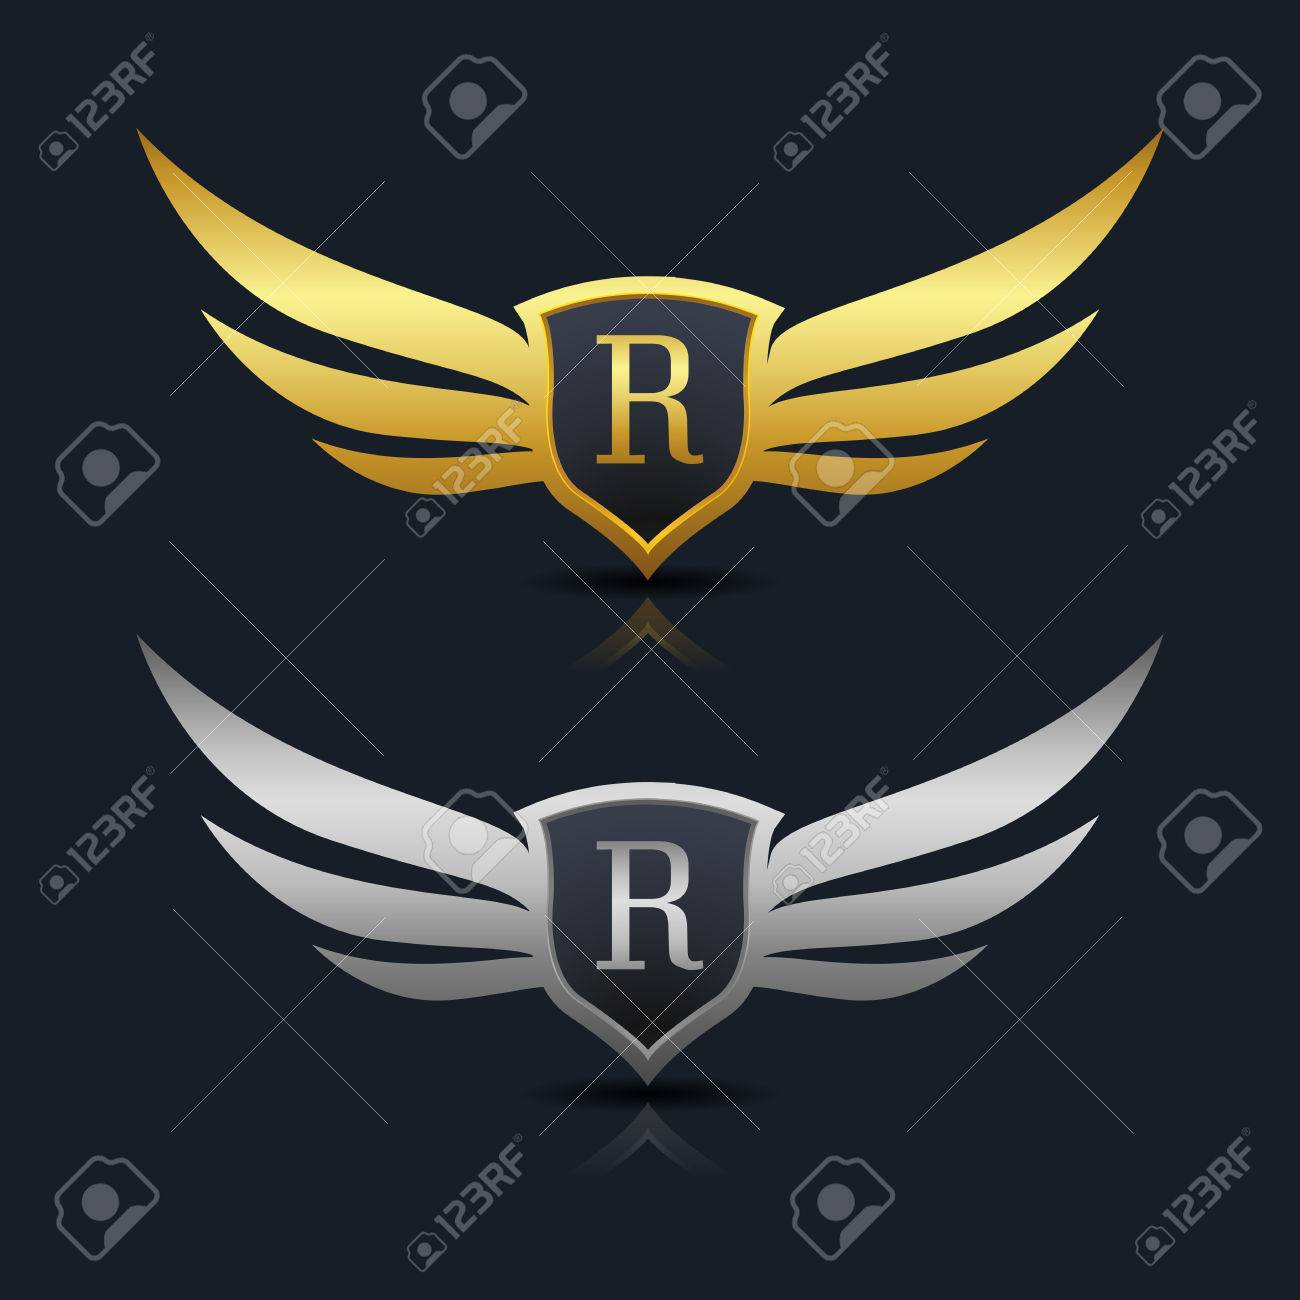 Wings shield letter r logo template royalty free cliparts vectors wings shield letter r logo template stock vector 77064110 biocorpaavc Choice Image